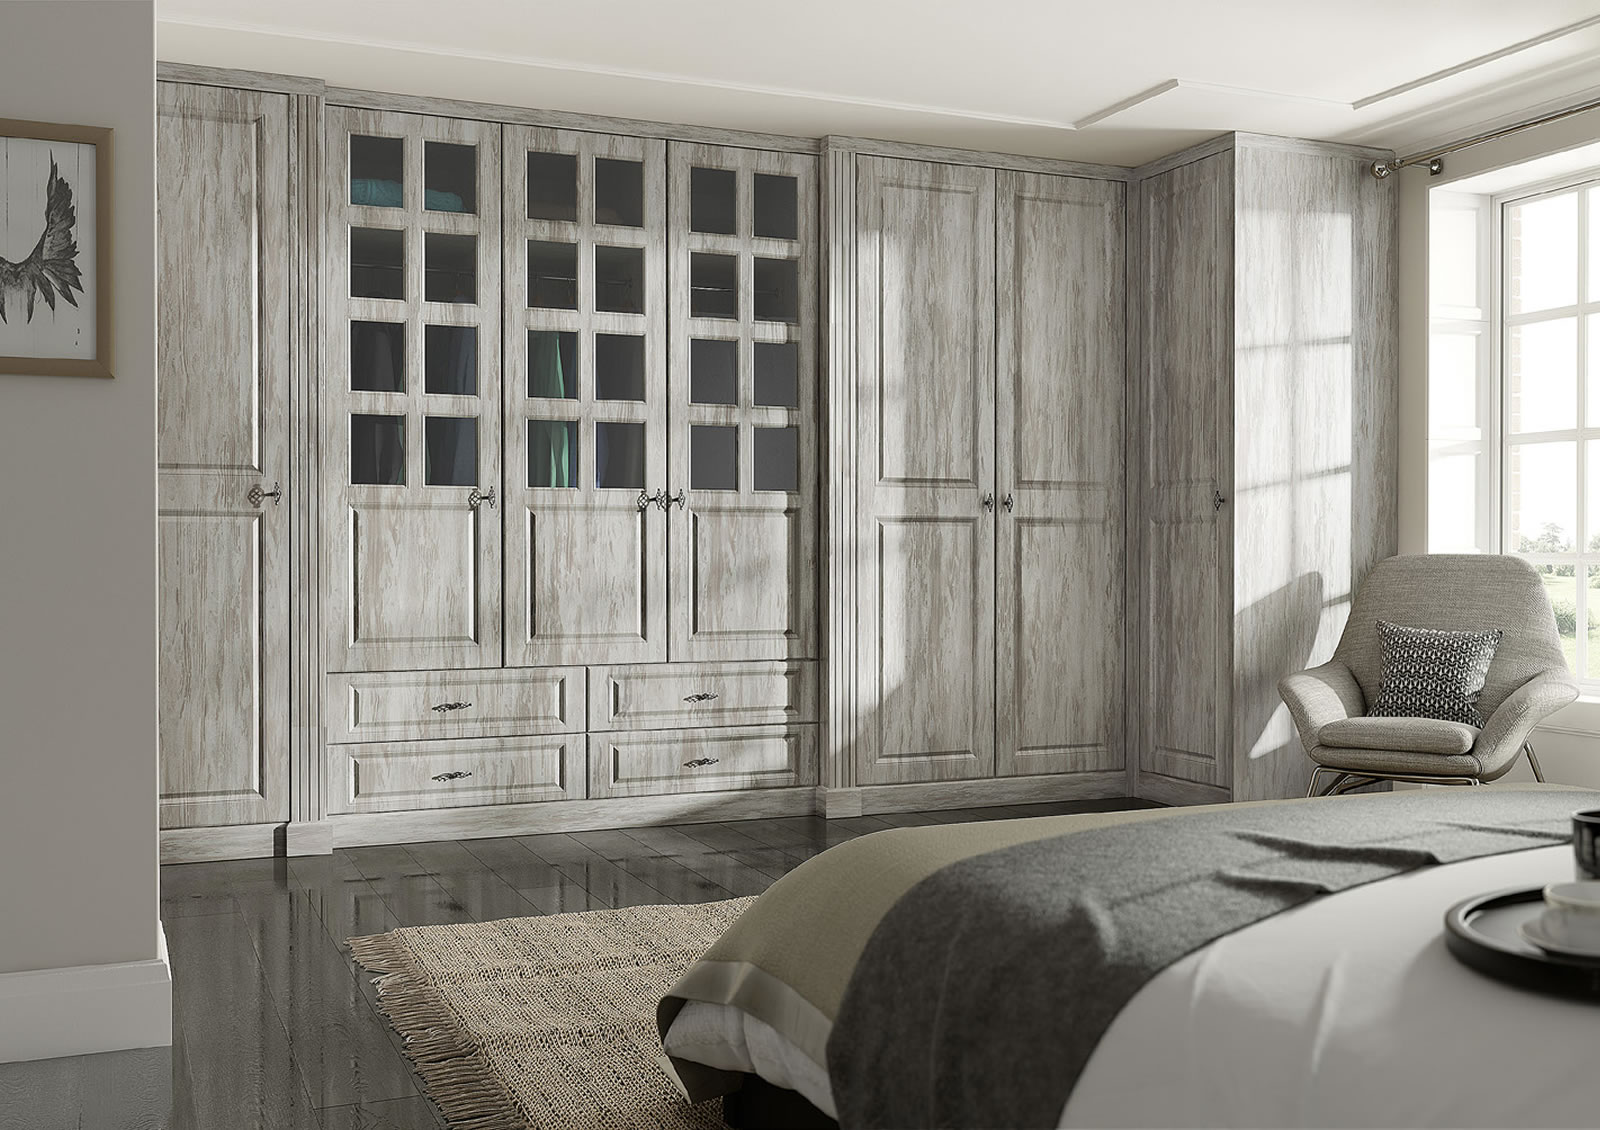 Mya fitted Bedrooms Santana shown in Light Artwood Main photograph